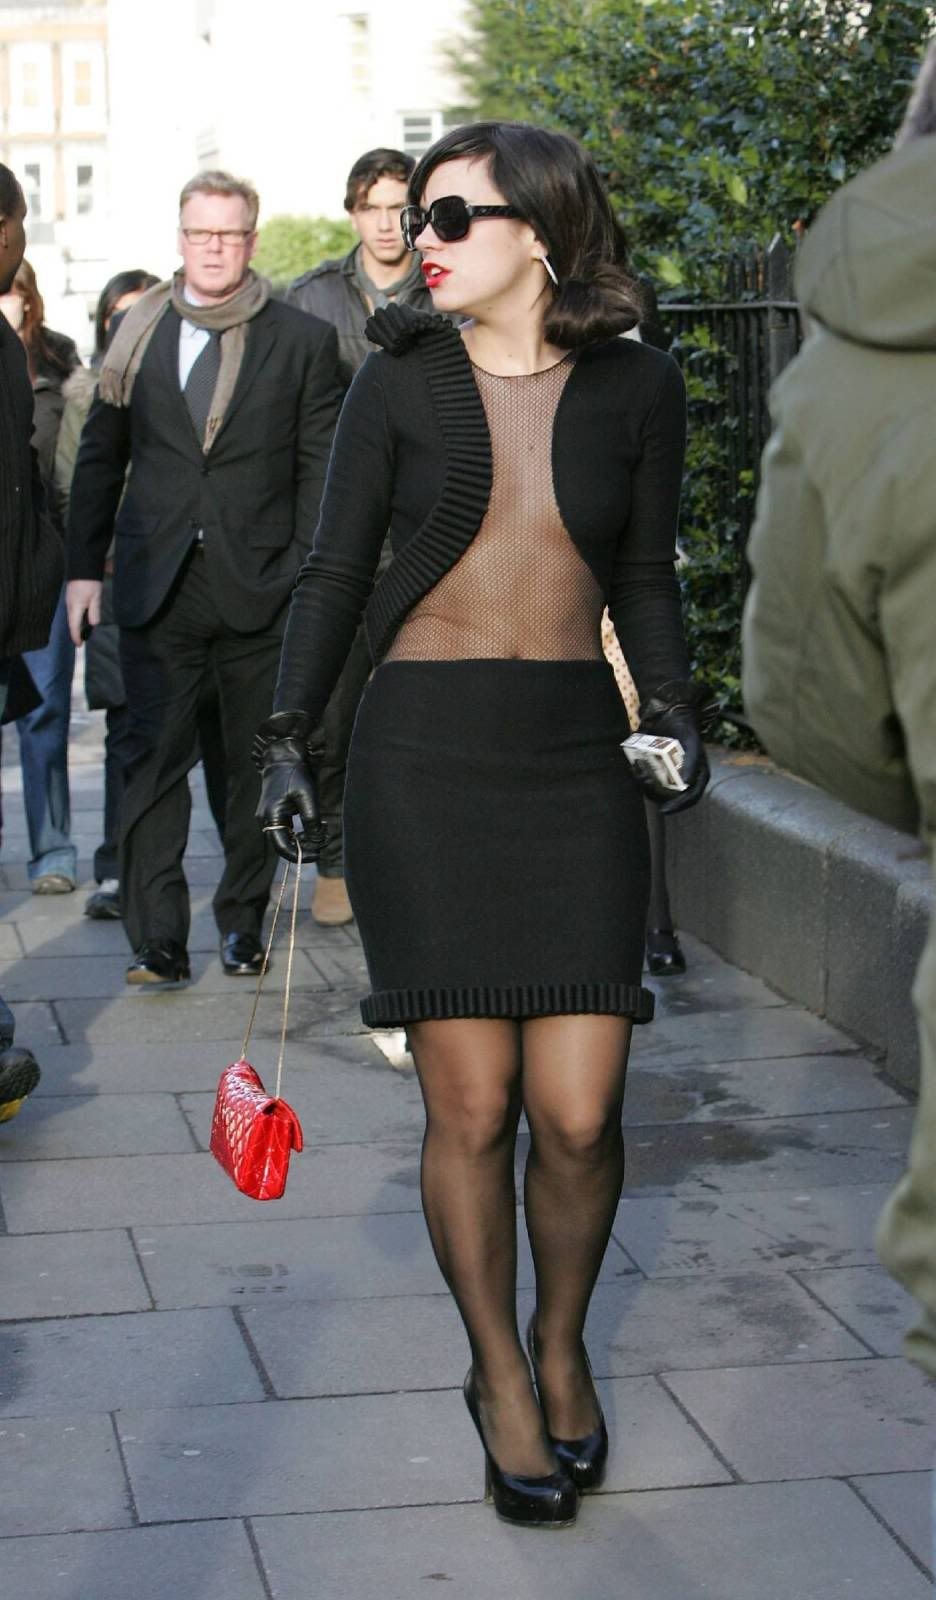 Young Lily Allen nudes (96 photo), Sexy, Paparazzi, Twitter, bra 2015